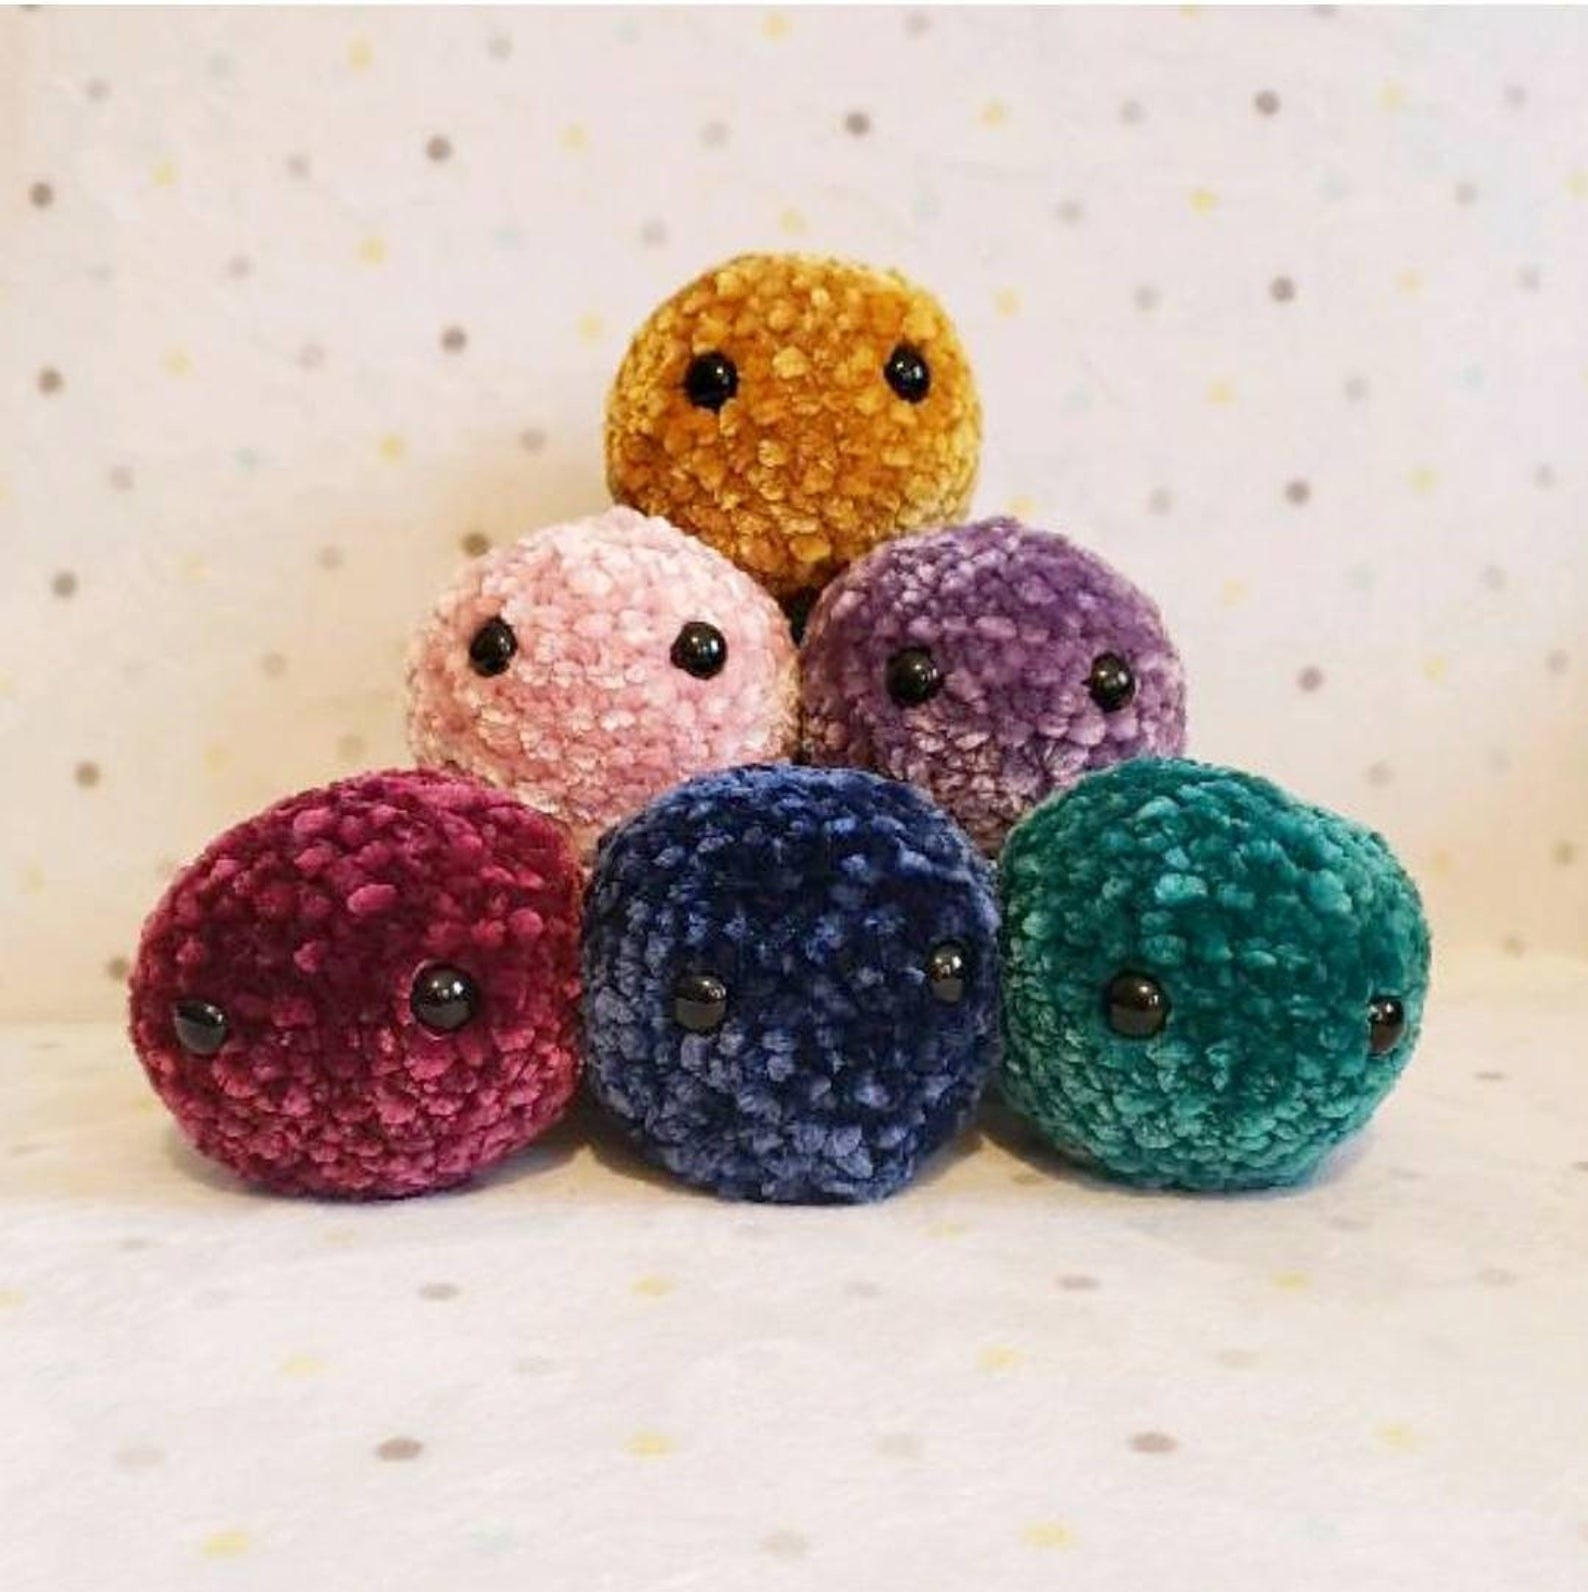 Round velvety balls in different colors with black beads for eyes